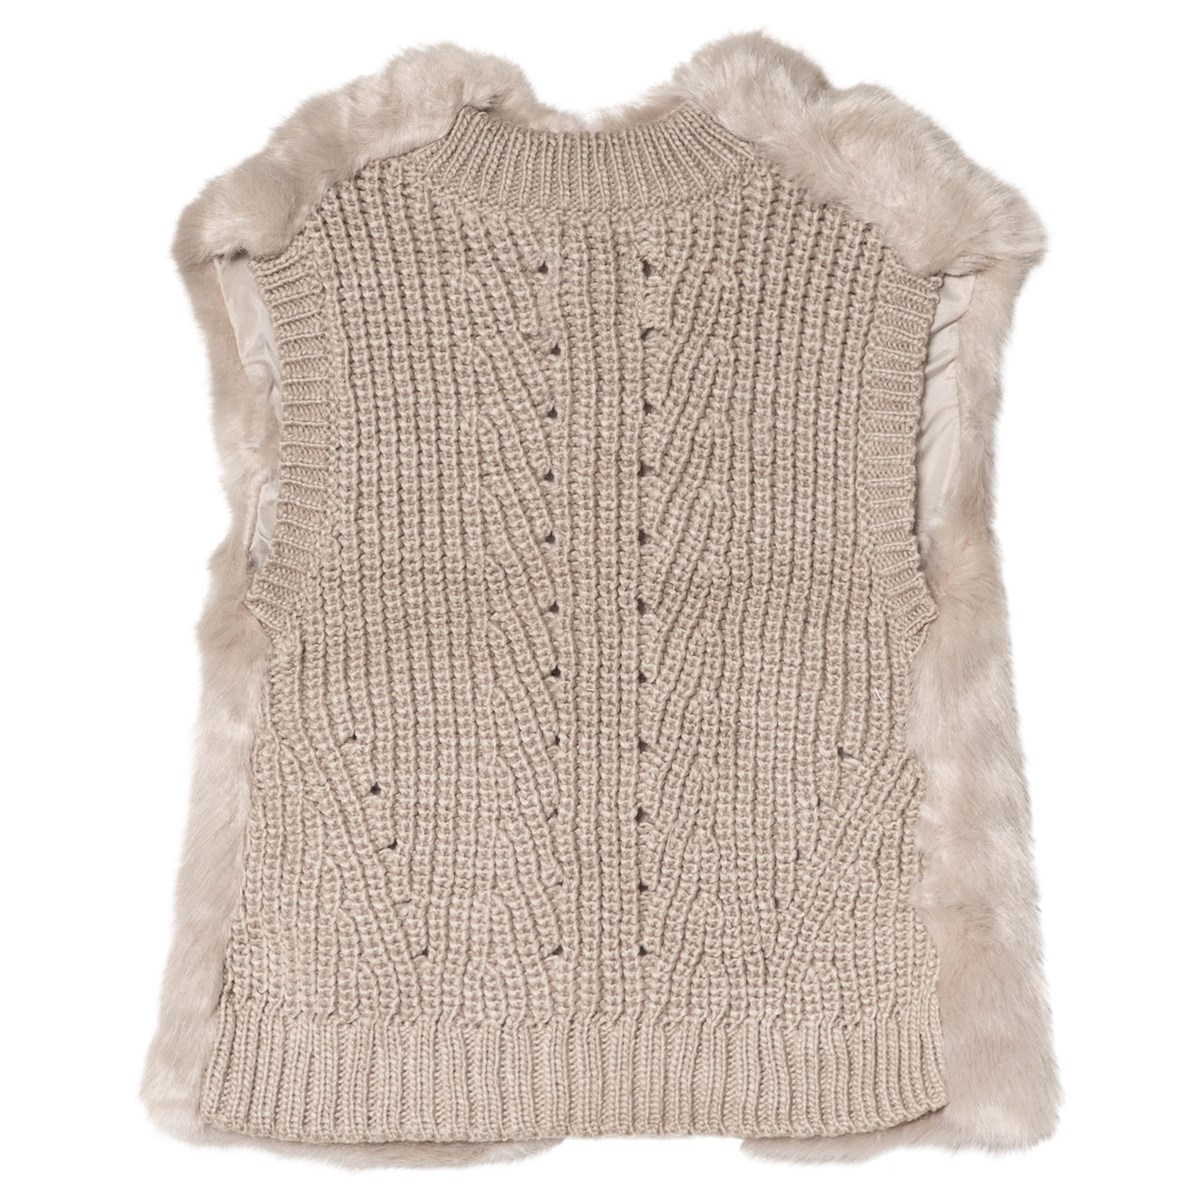 4df25c9a Mayoral - Cream Faux Fur and Knitted Back Gilet - Babyshop.com